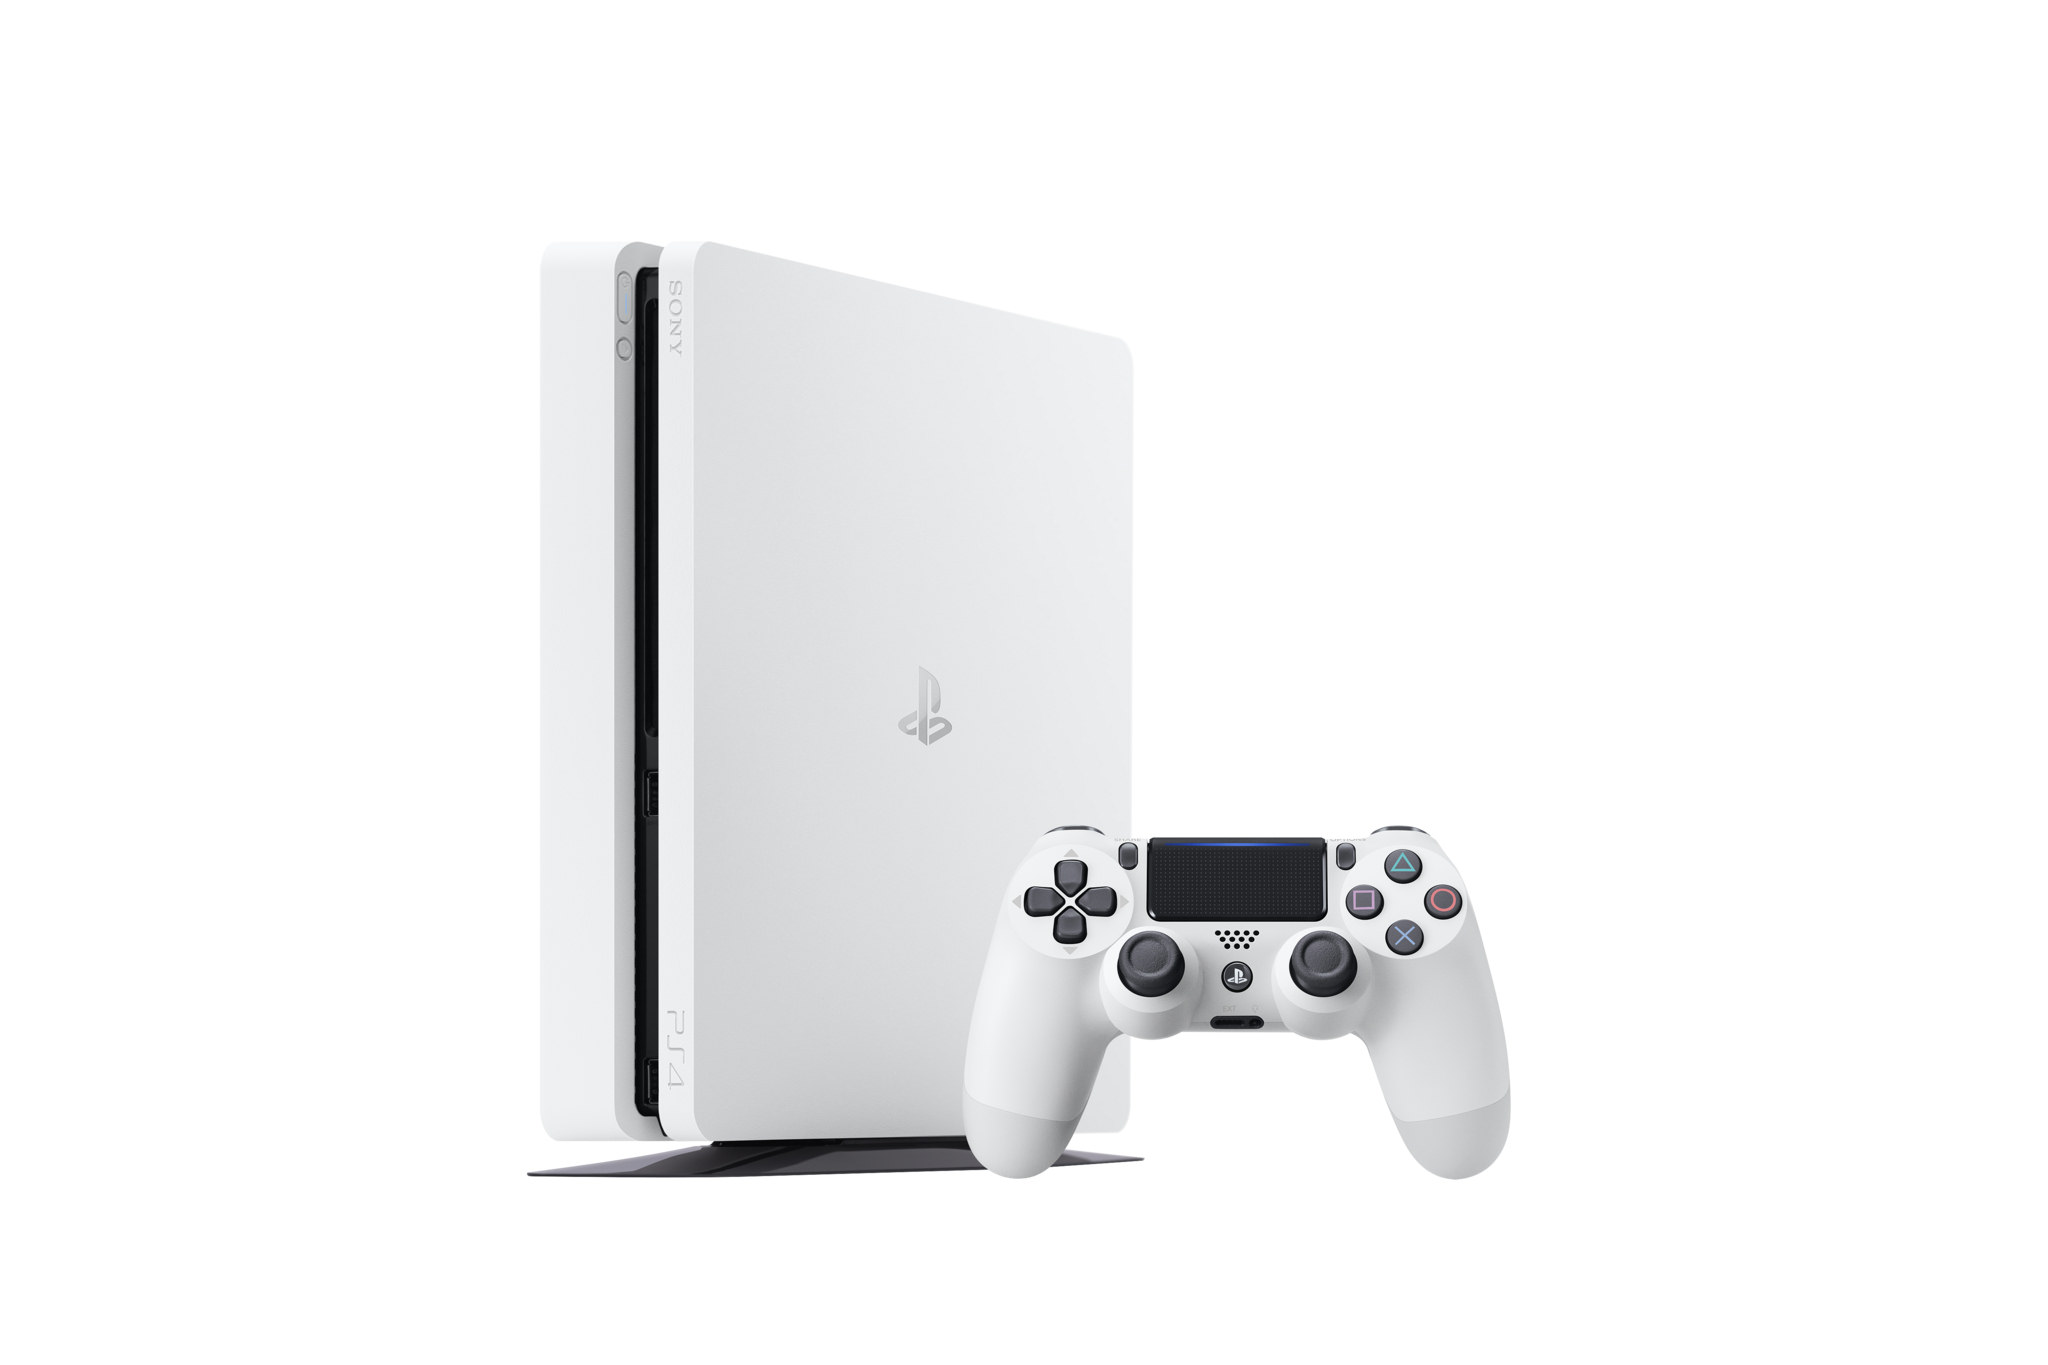 ps4_slim_glacier_white_standing_with_controller_shot_1